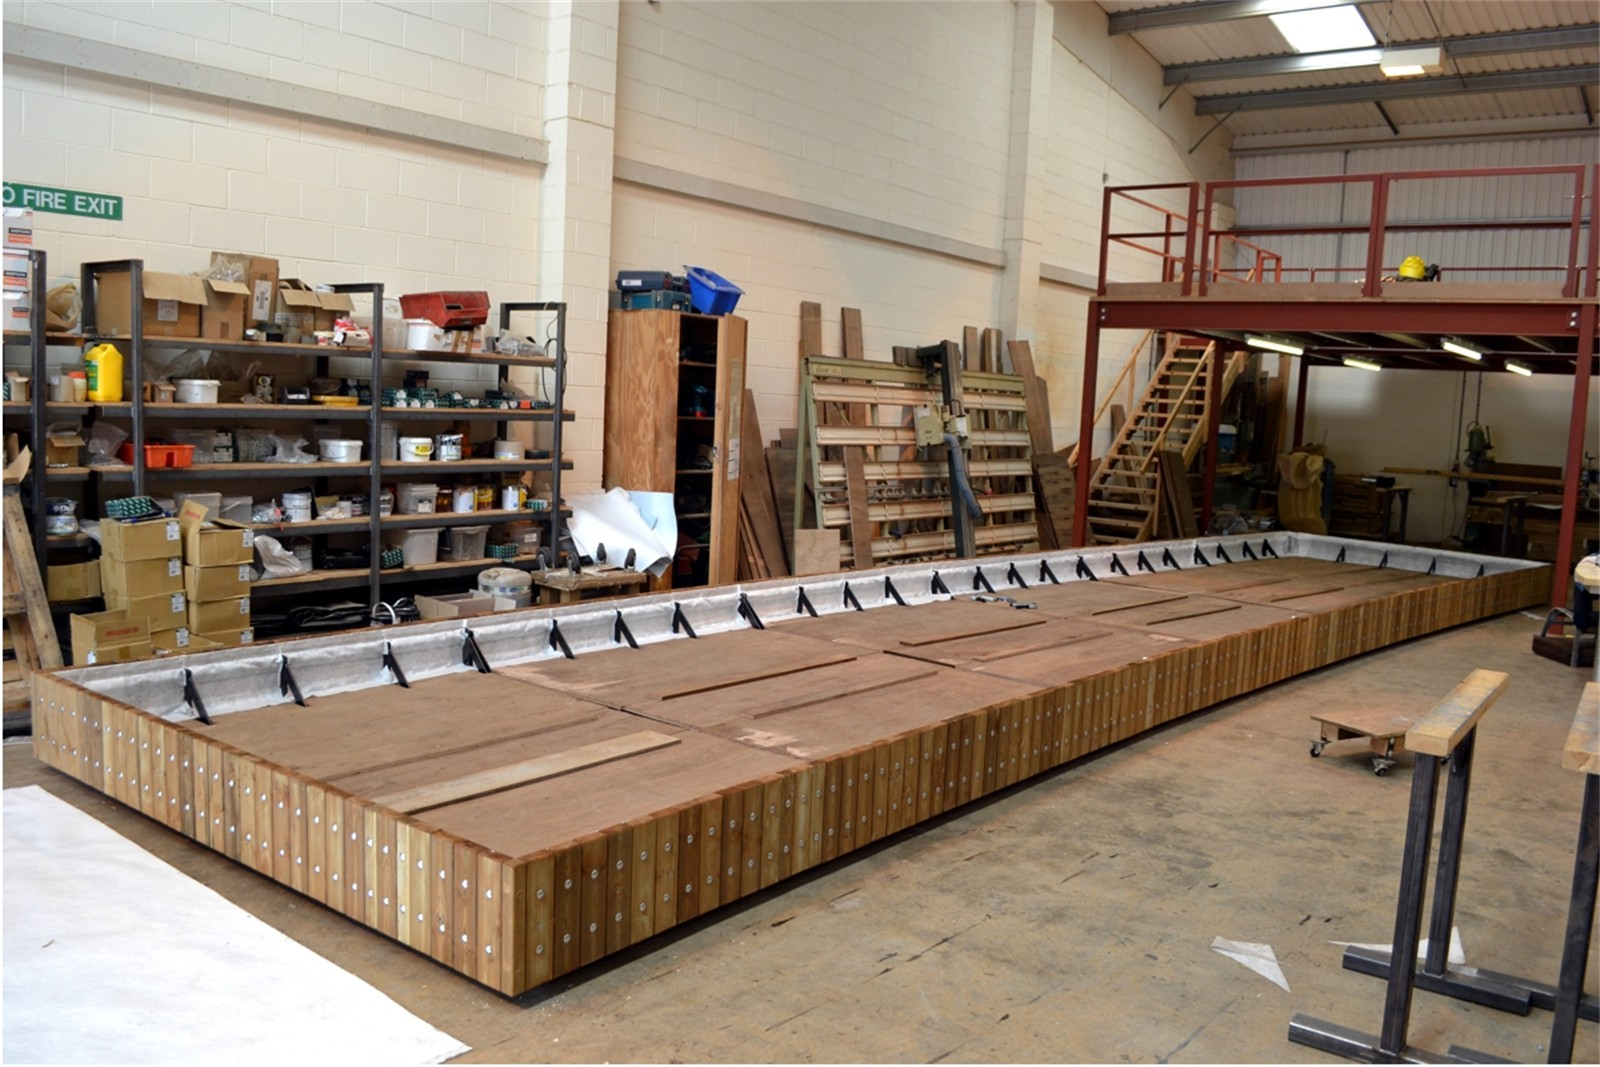 38psw10 - Swithland large shaped planter in manufacture